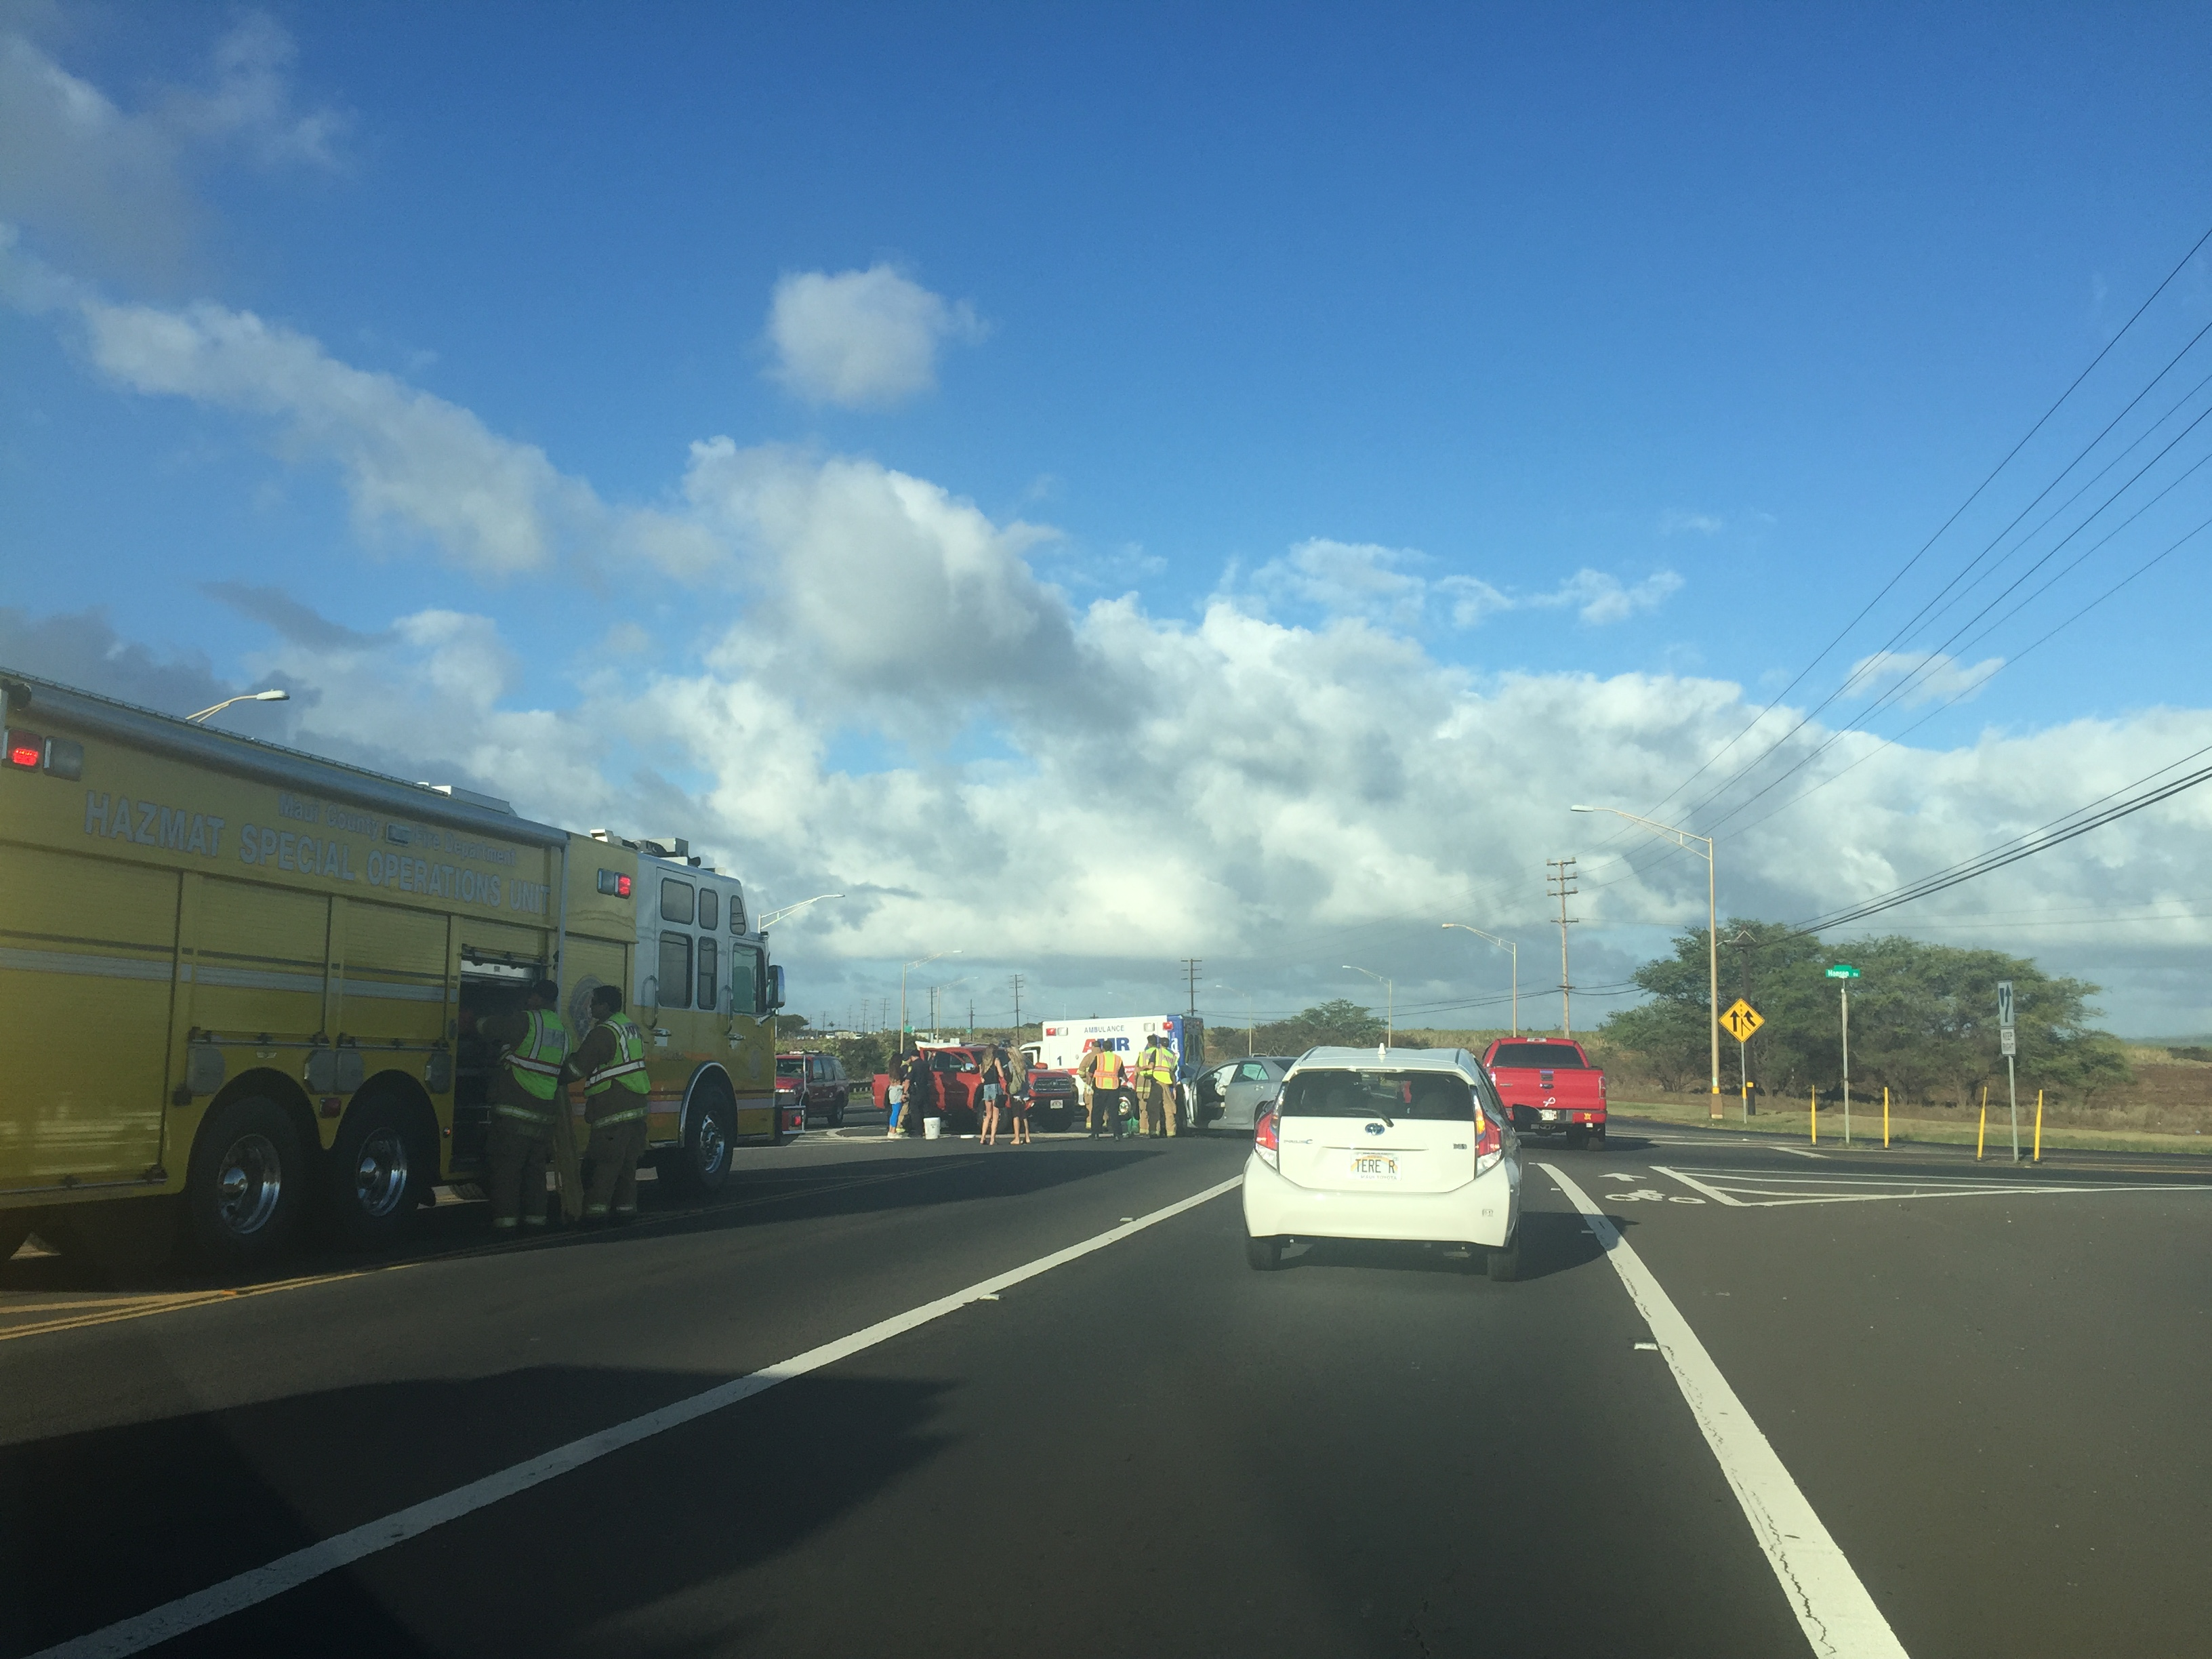 Emergency crews are on the scene of a motor vehicle accident on the Hāna Highway near the Hansen Road intersection. PC: Tara Dugan.